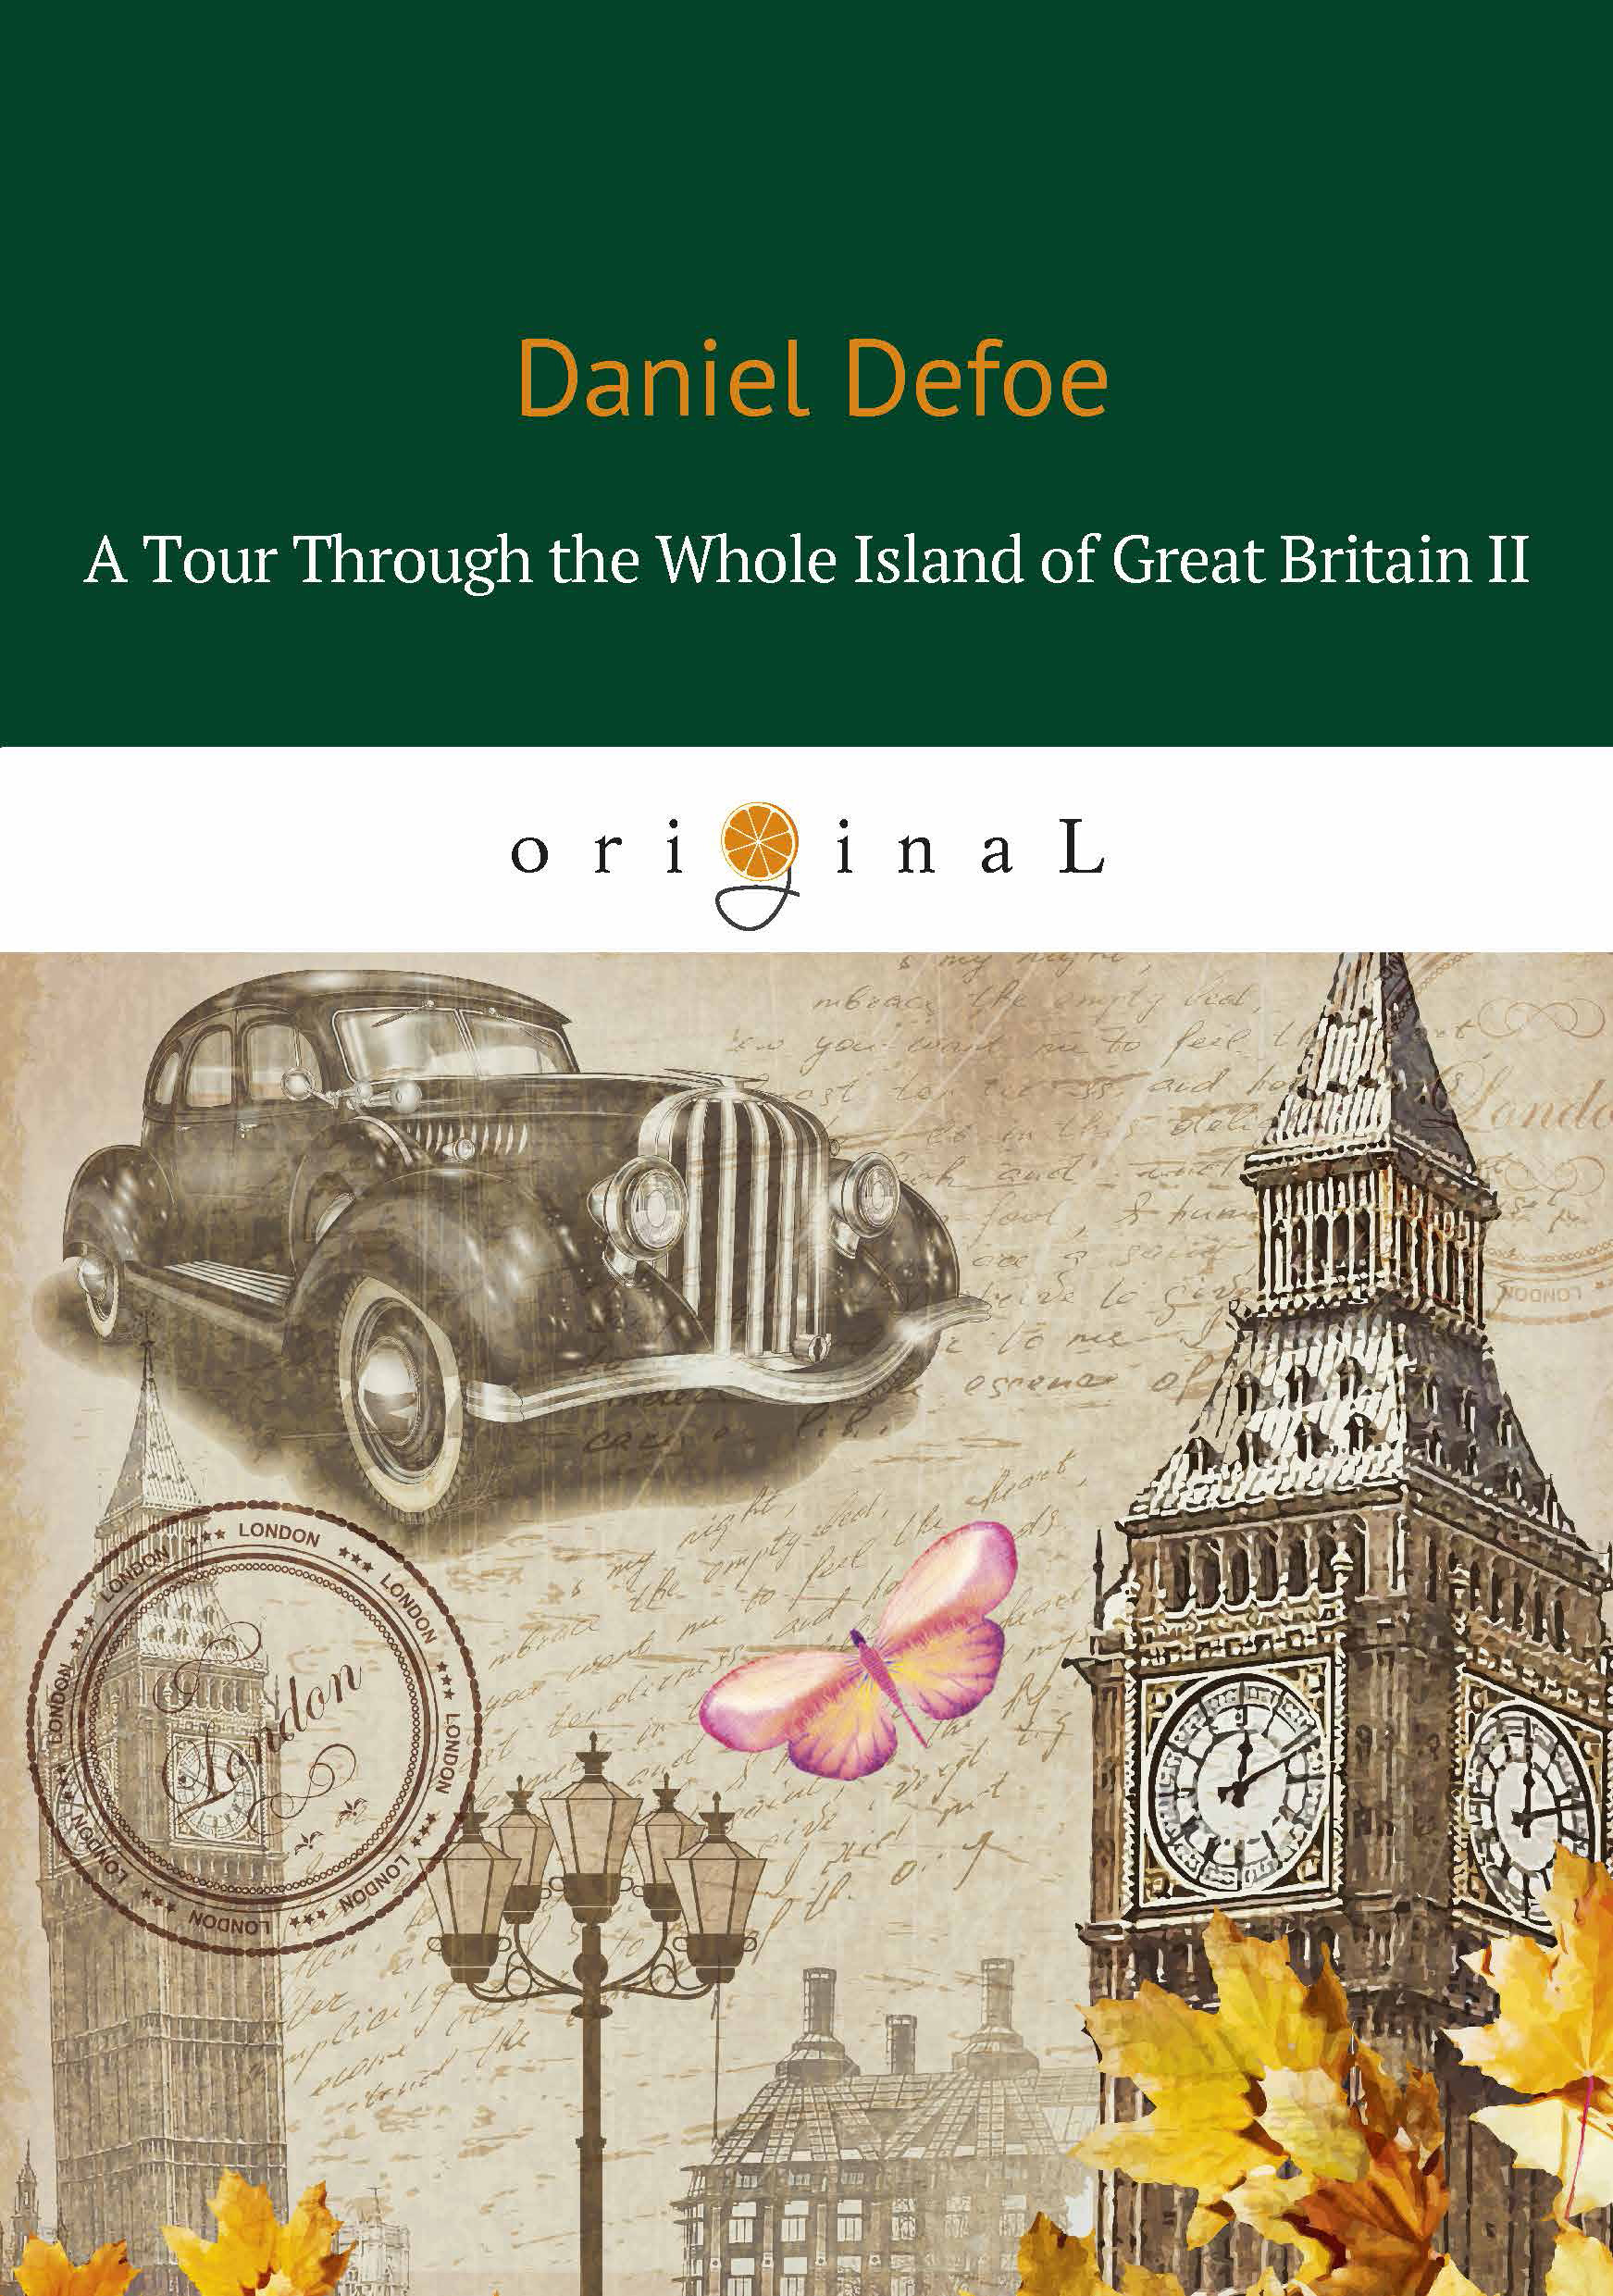 Даниэль Дефо A Tour Through the Whole Island of Great Britain II defoe d a tour through the whole island of great britain i тур через великобританию 1 на англ яз